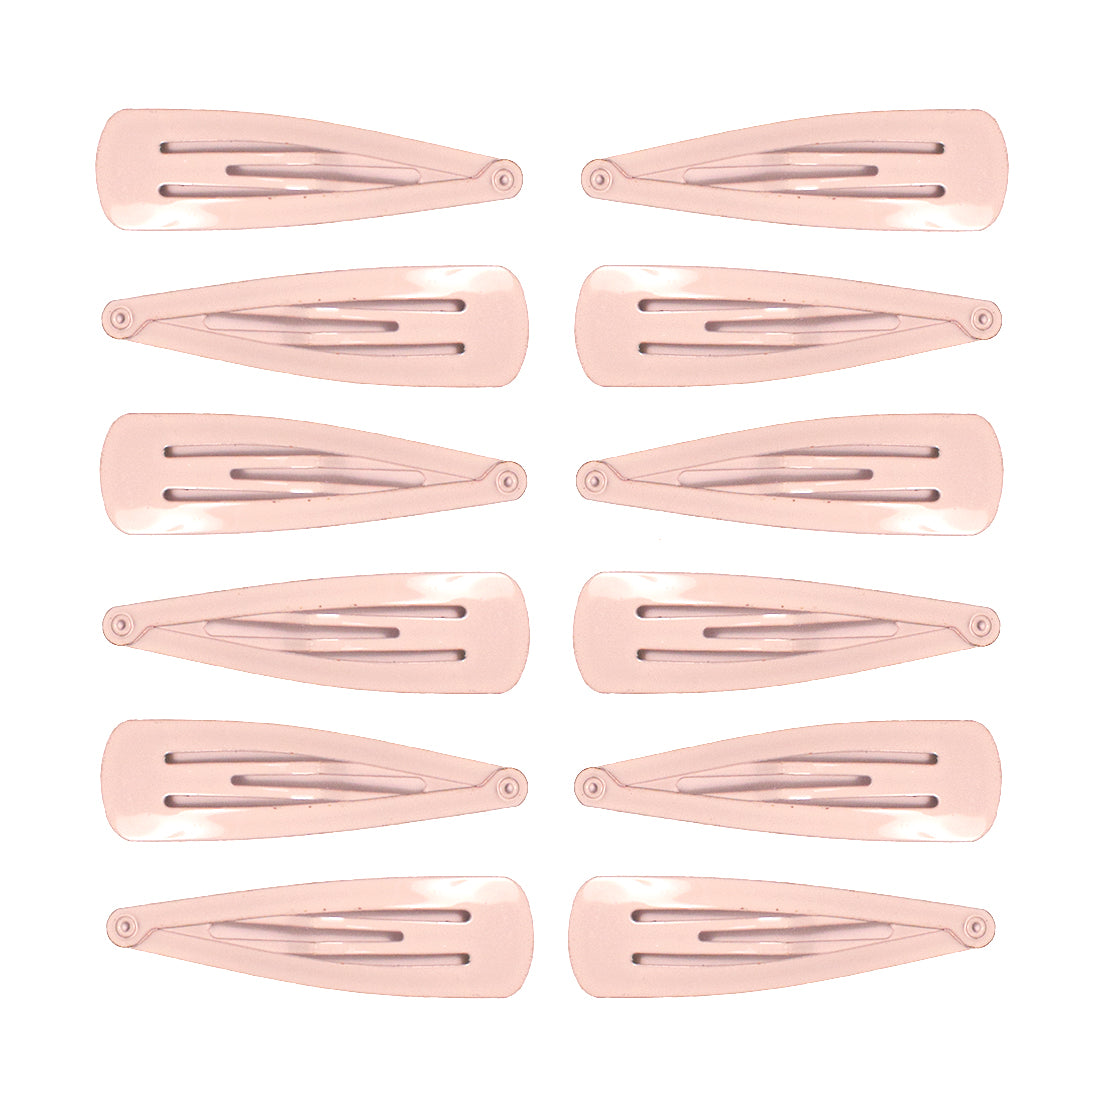 Mia® Spirit Line Snip Snaps® high gloss paint - white color - 12 pieces shown out of the packaging - designed by #MiaKaminski of #MiaBeauty #beauty #hair #hairclips #hairaccessories #barrettes